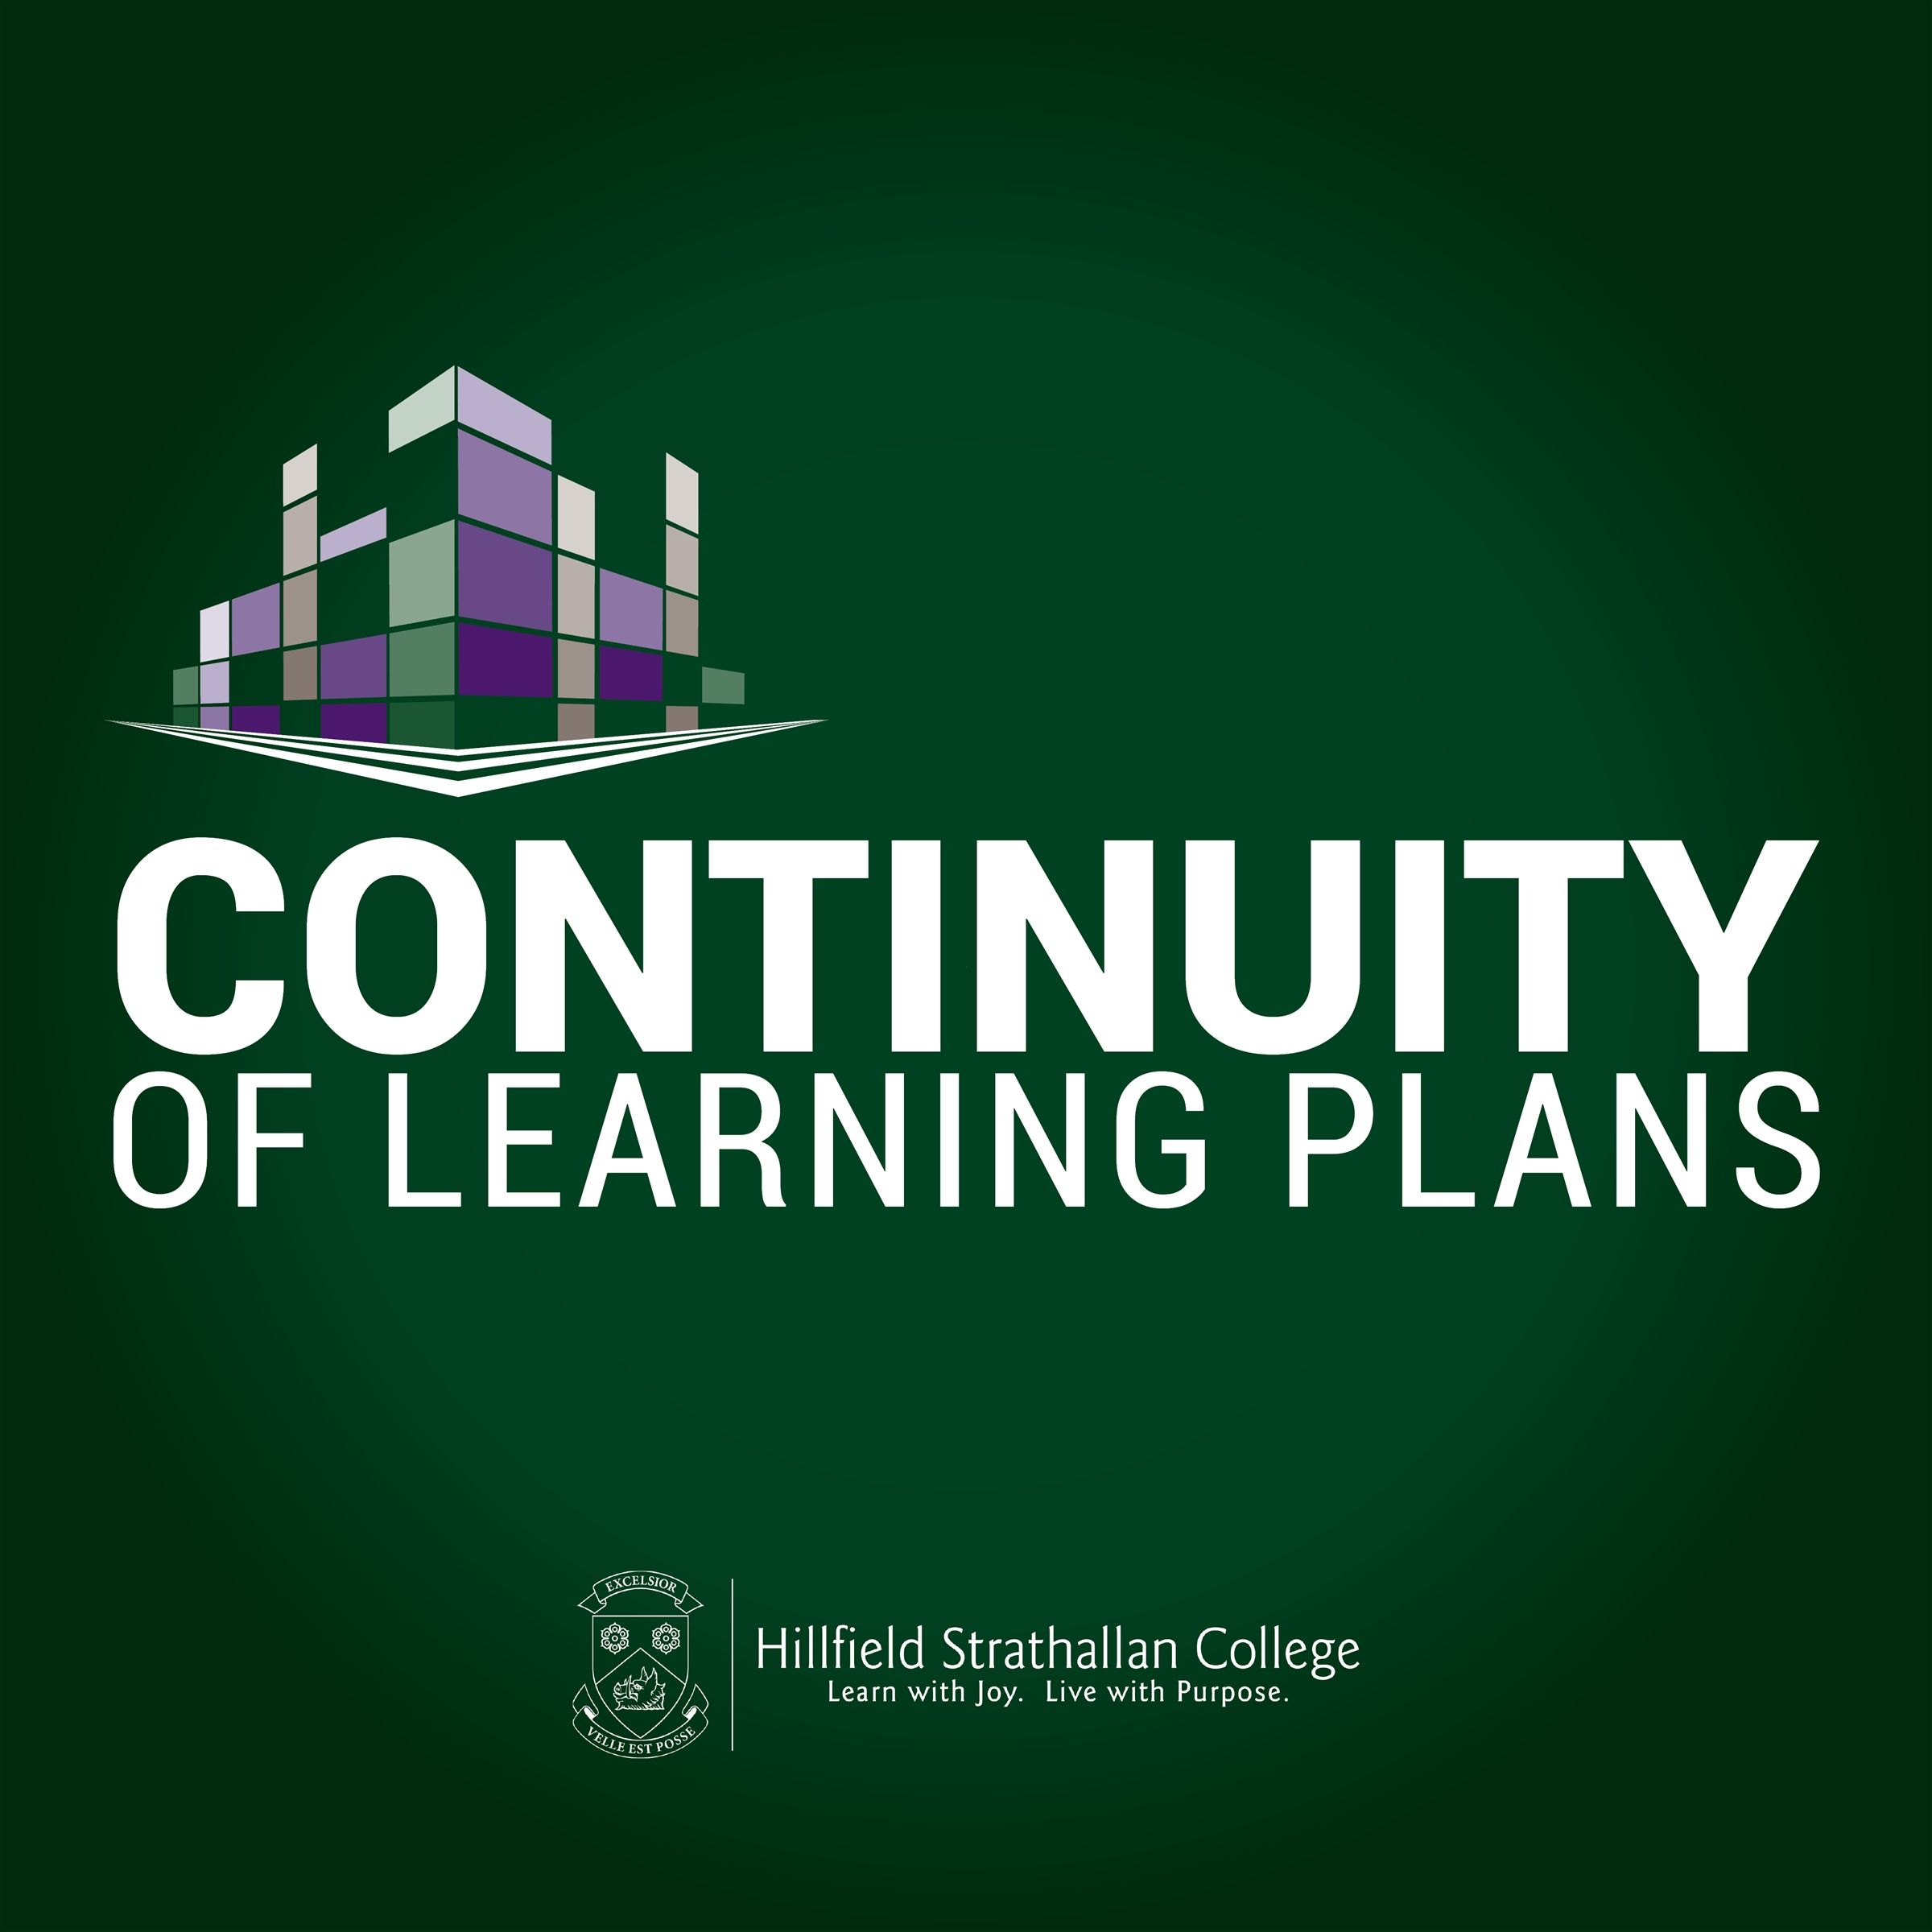 Click here to view the Continuity of Learning Plans